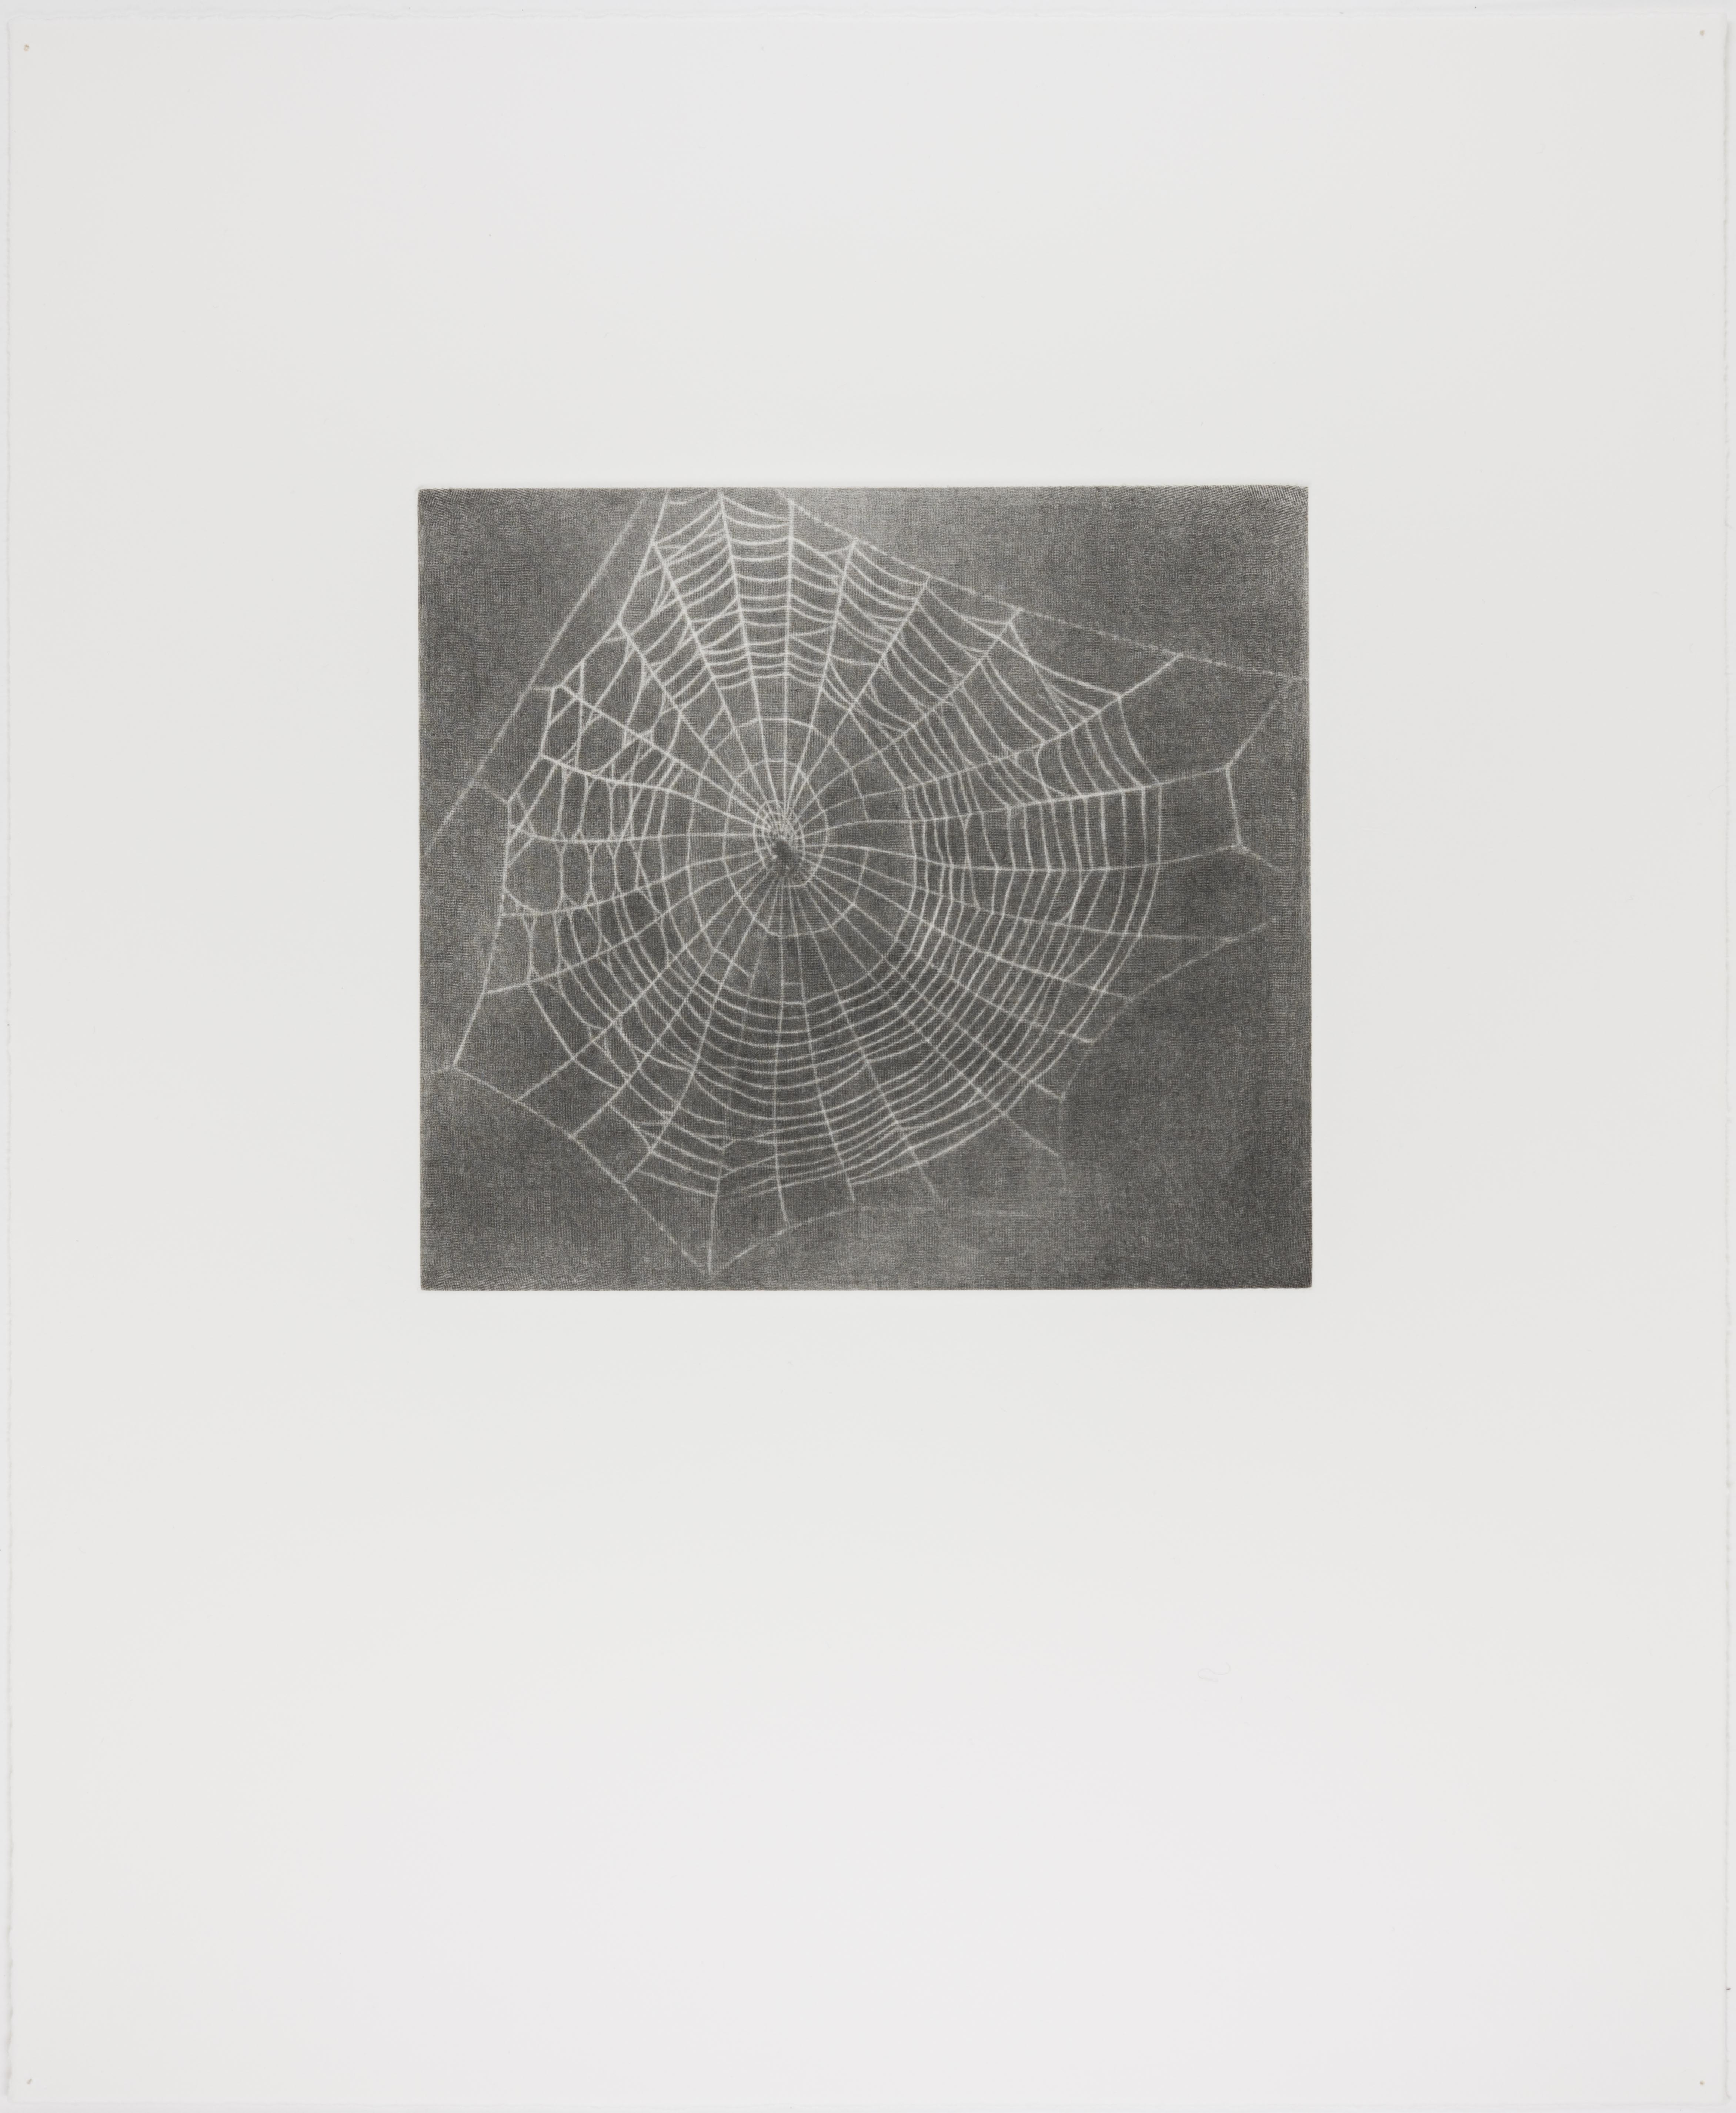 Vija Celmins, State proof for Web #1, [n.d.]